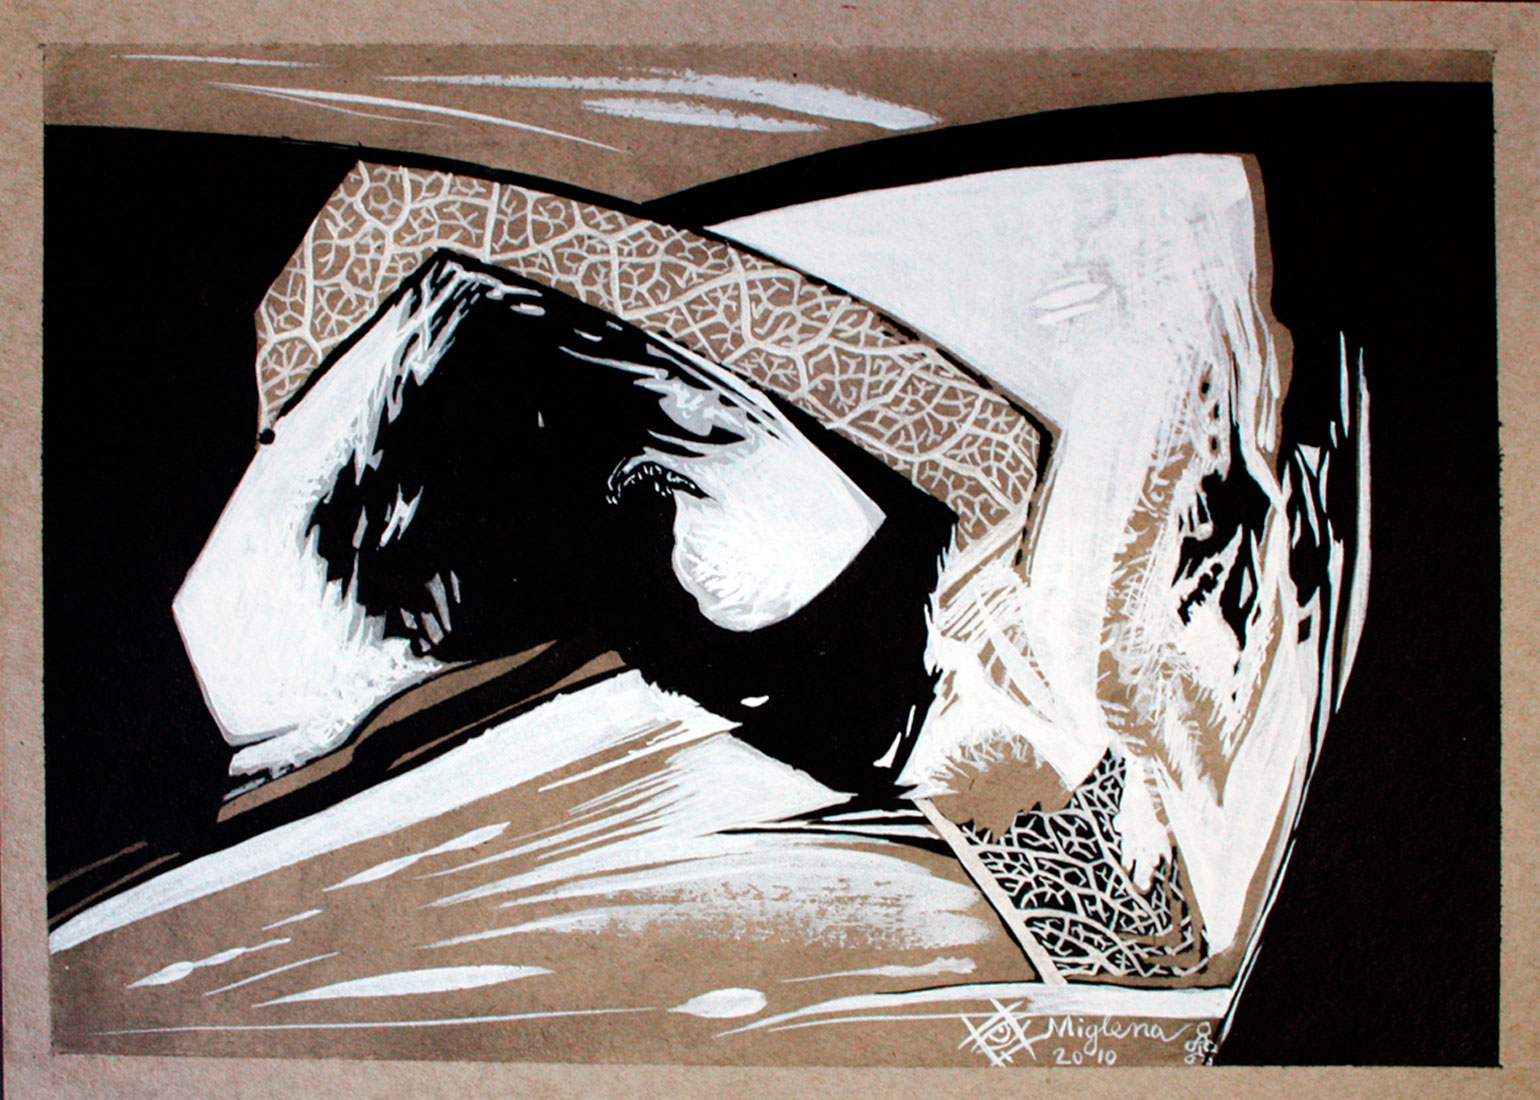 22 x 31 cm drawing ink on paper abstract art